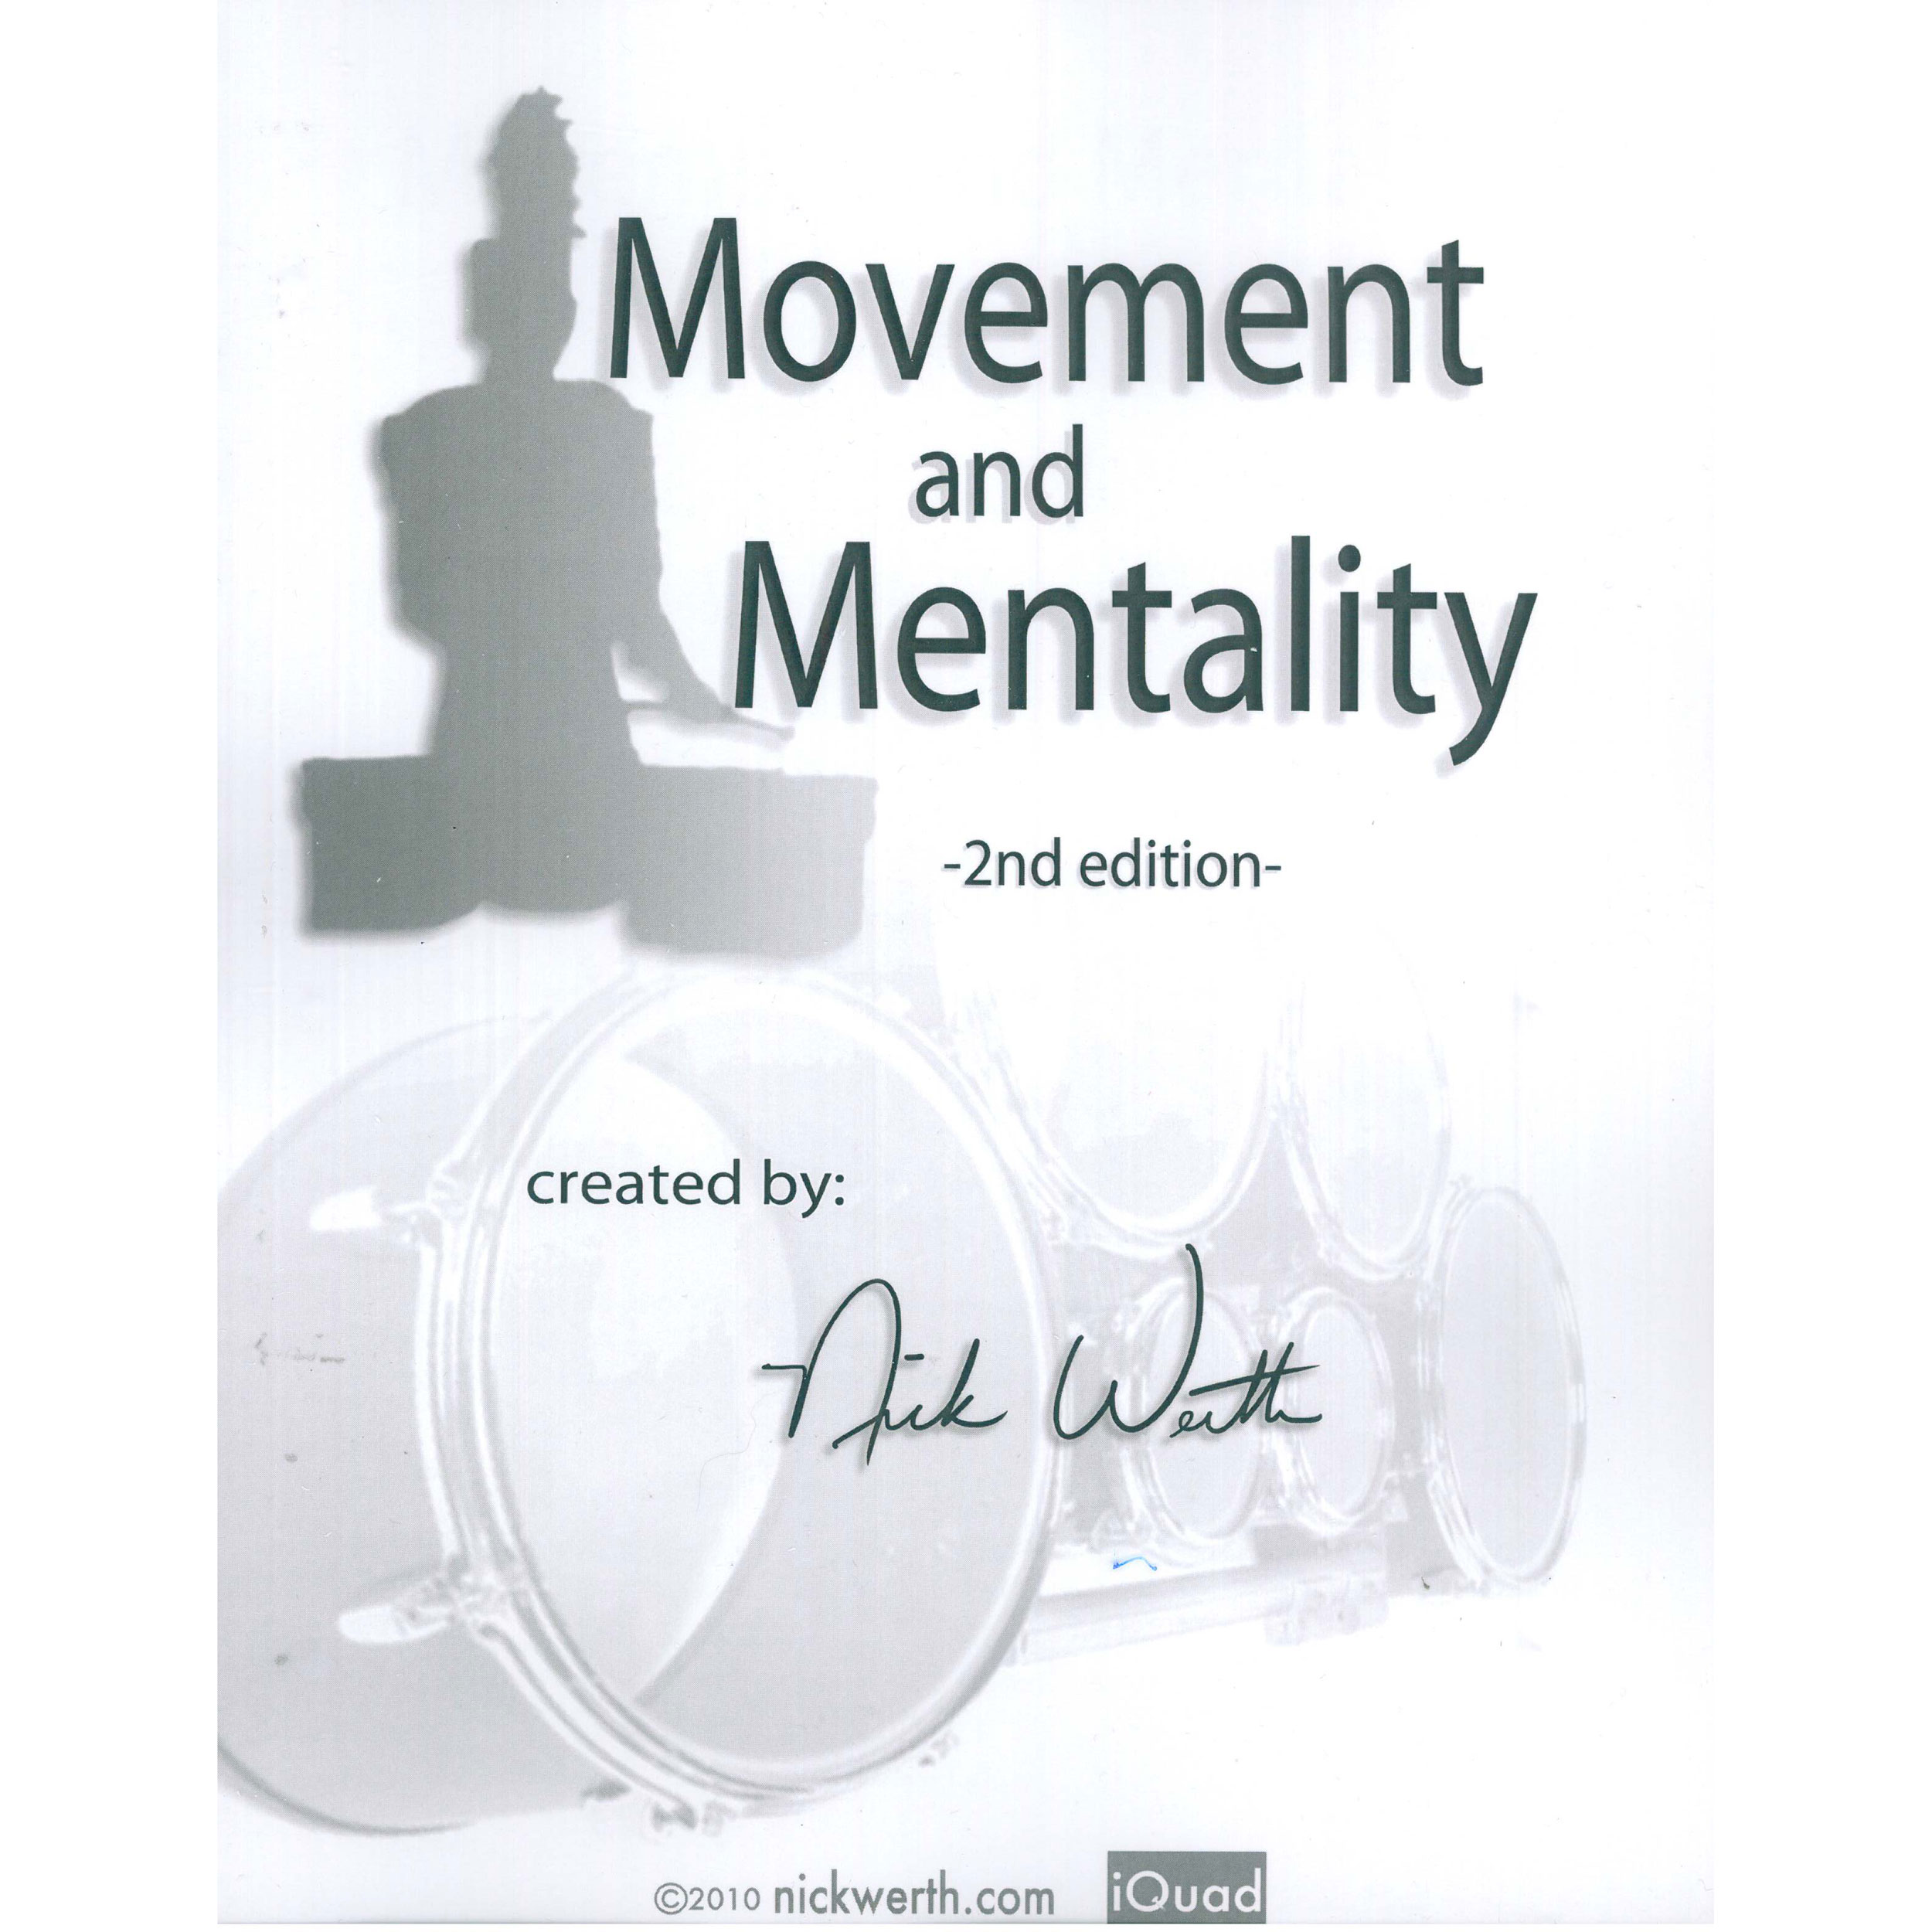 Movement and Mentality by Nick Werth